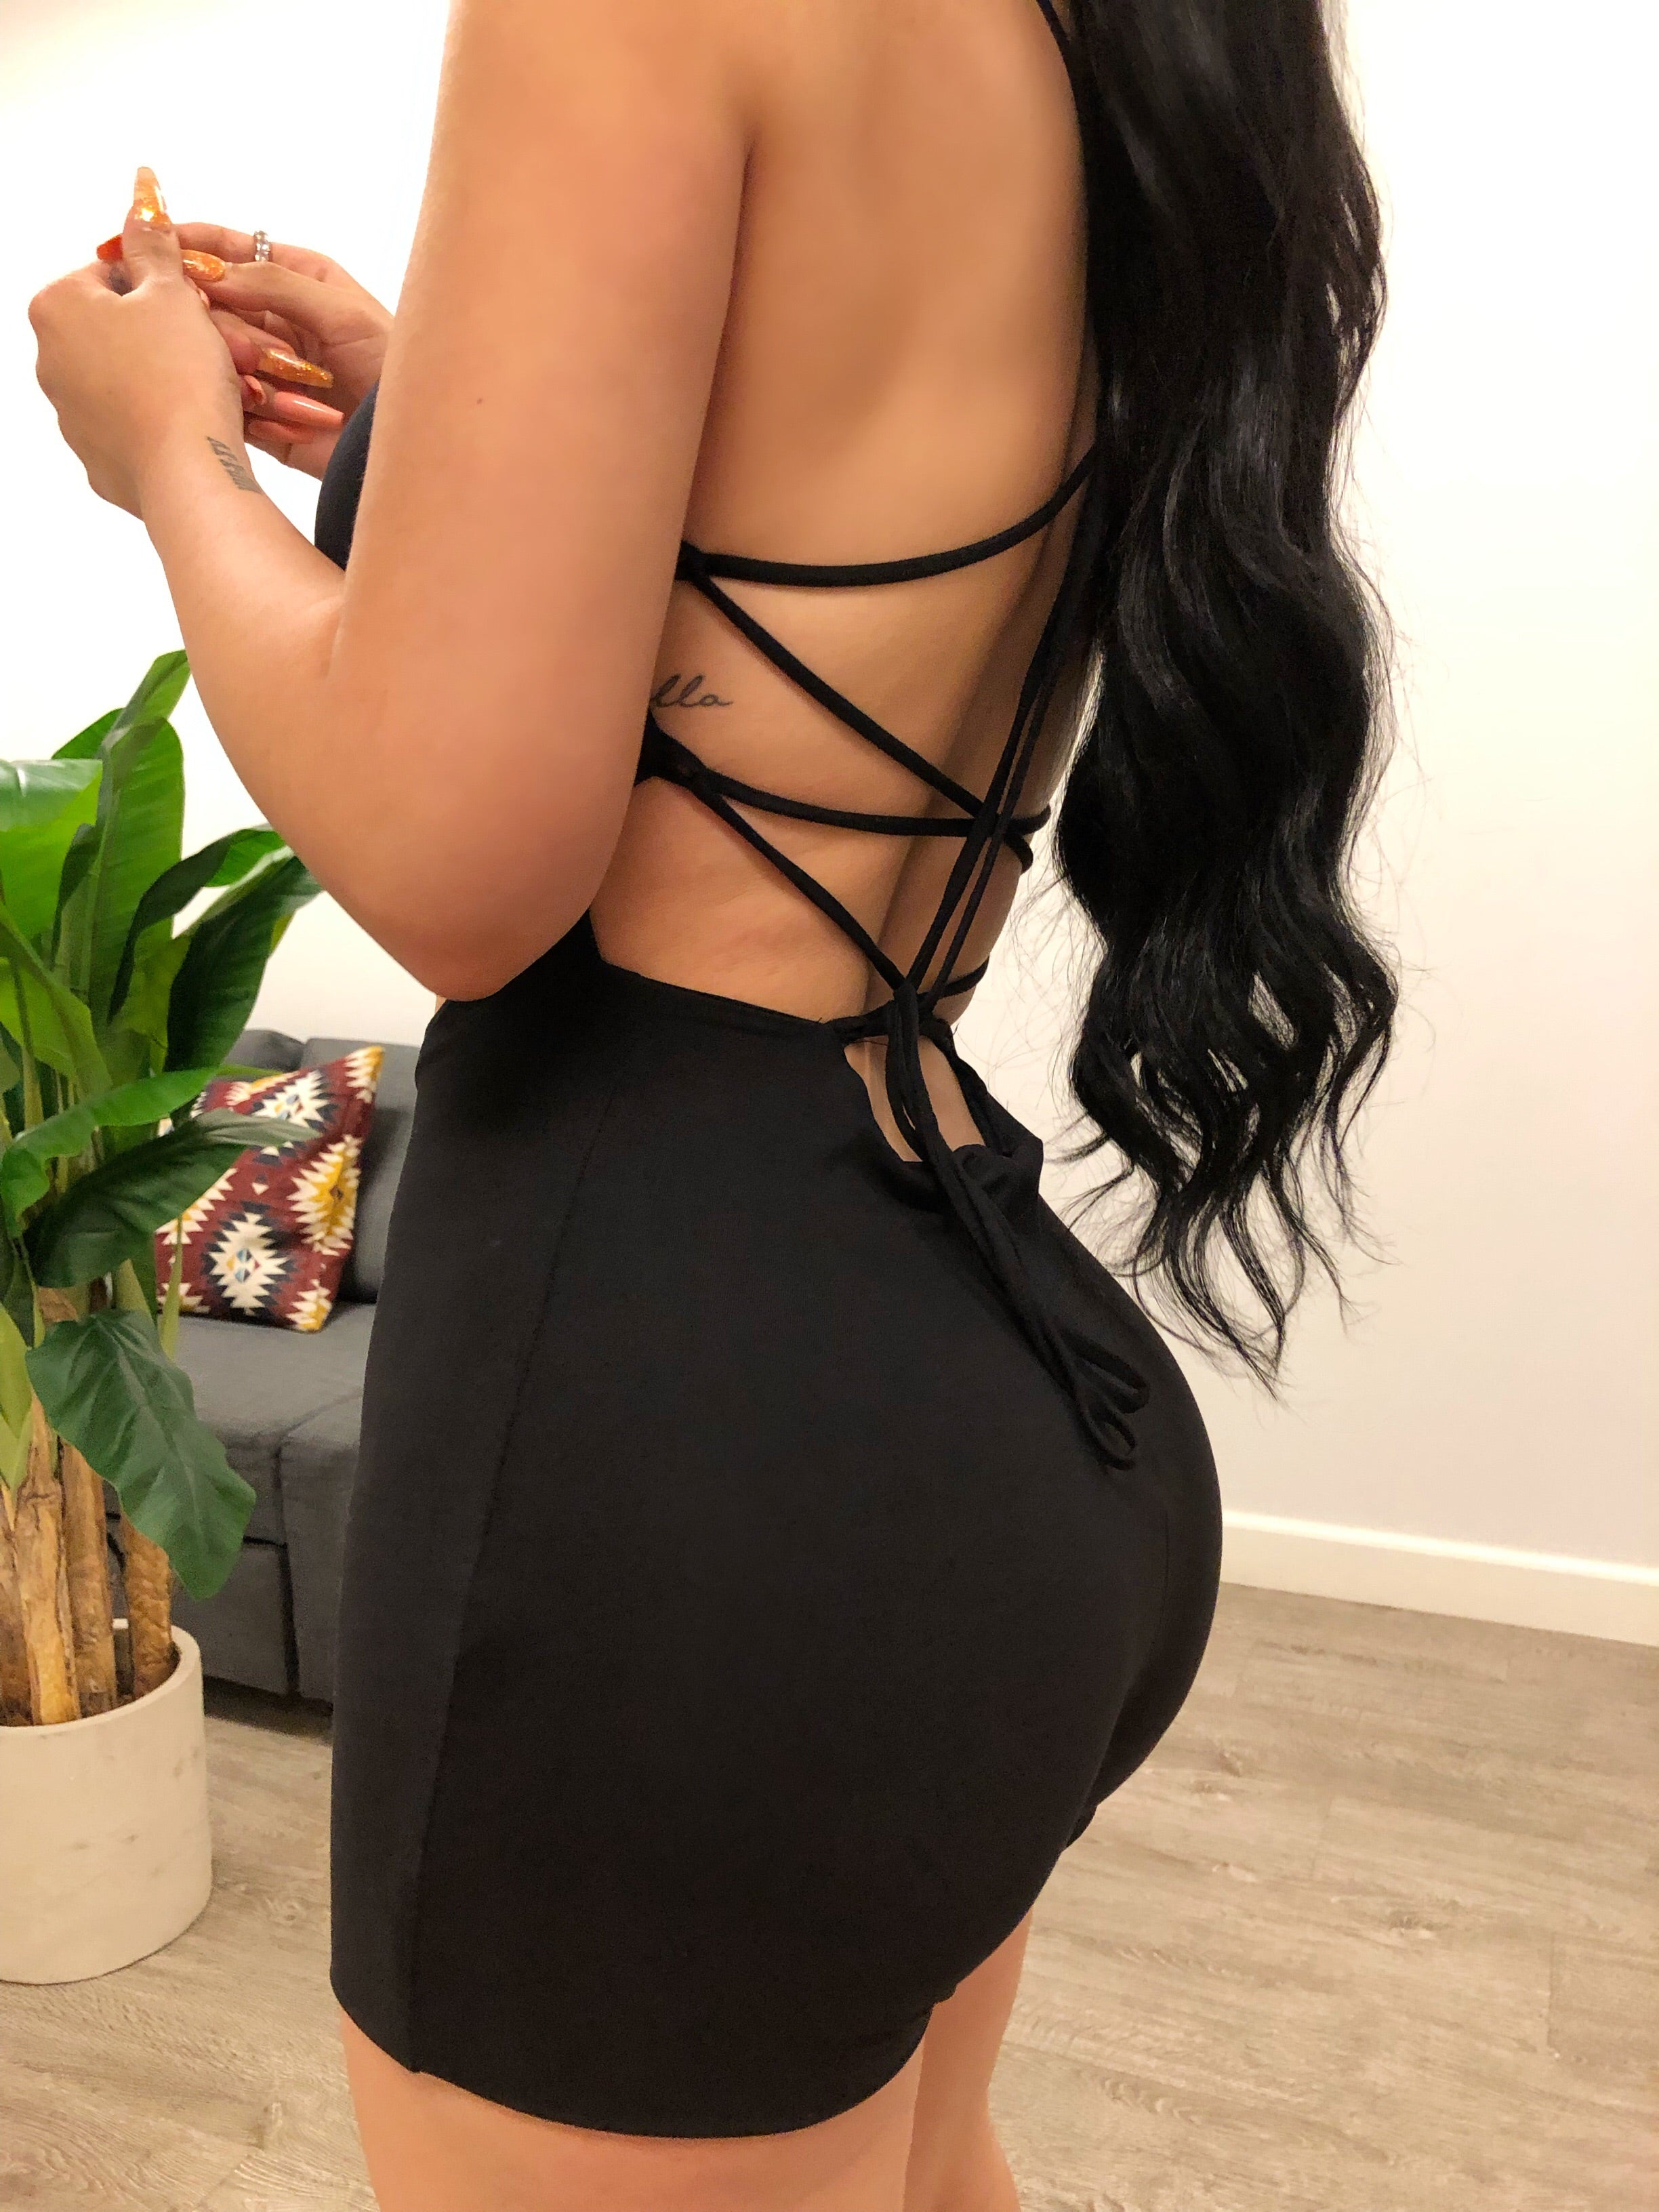 black spaghetti strap skin tight romper, U shape neckline showing mid cleavage, oval shaped opening on stomach area, bottom ends mid thigh, back has strings that criss cross and tie up at the bottom